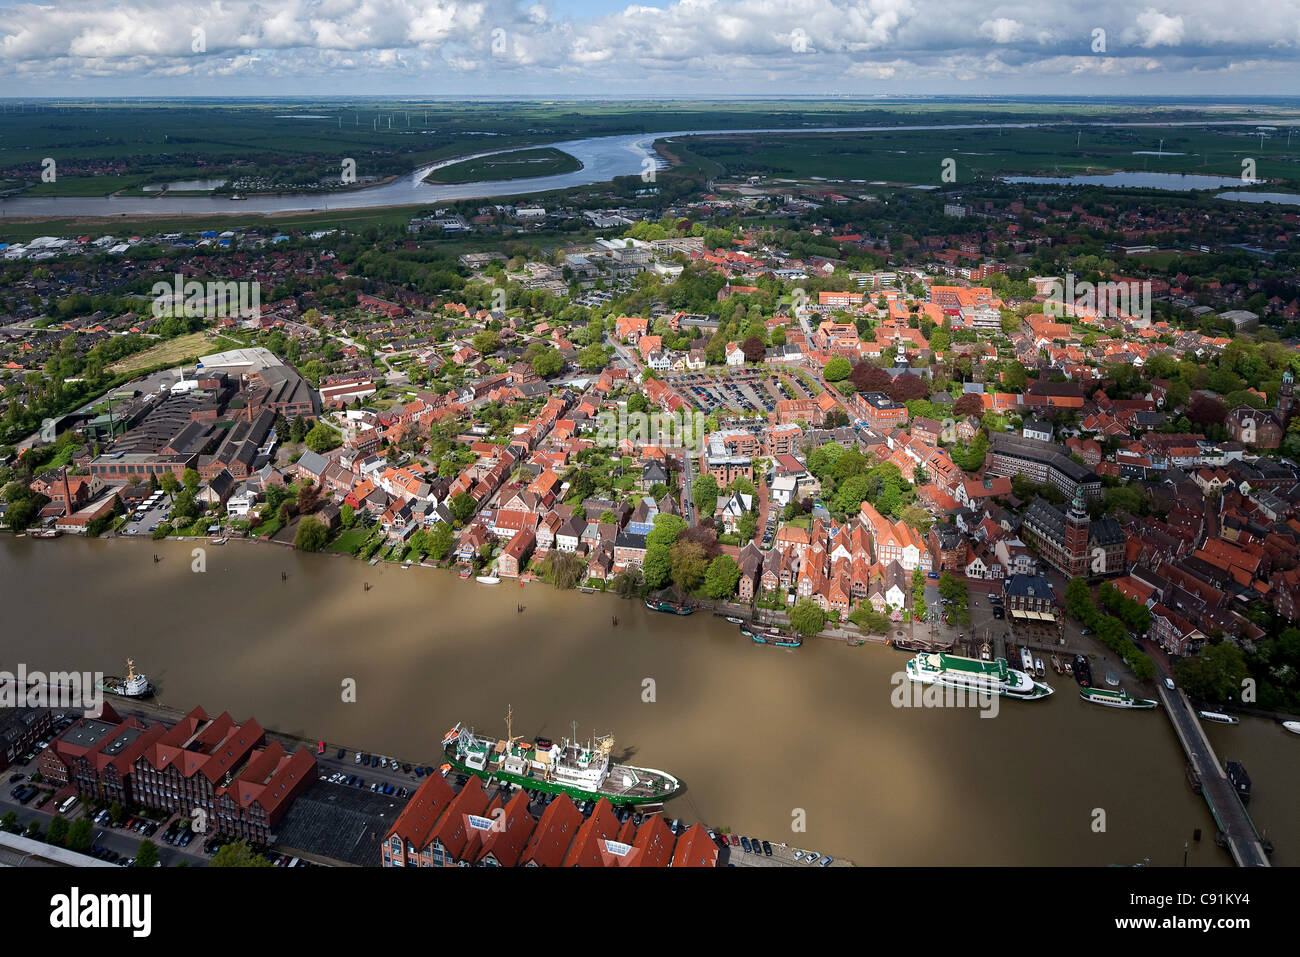 Aerial view of the town of Leer, harbour and town hall bridge, view across to the Ems River Lower Saxony, Germany - Stock Image